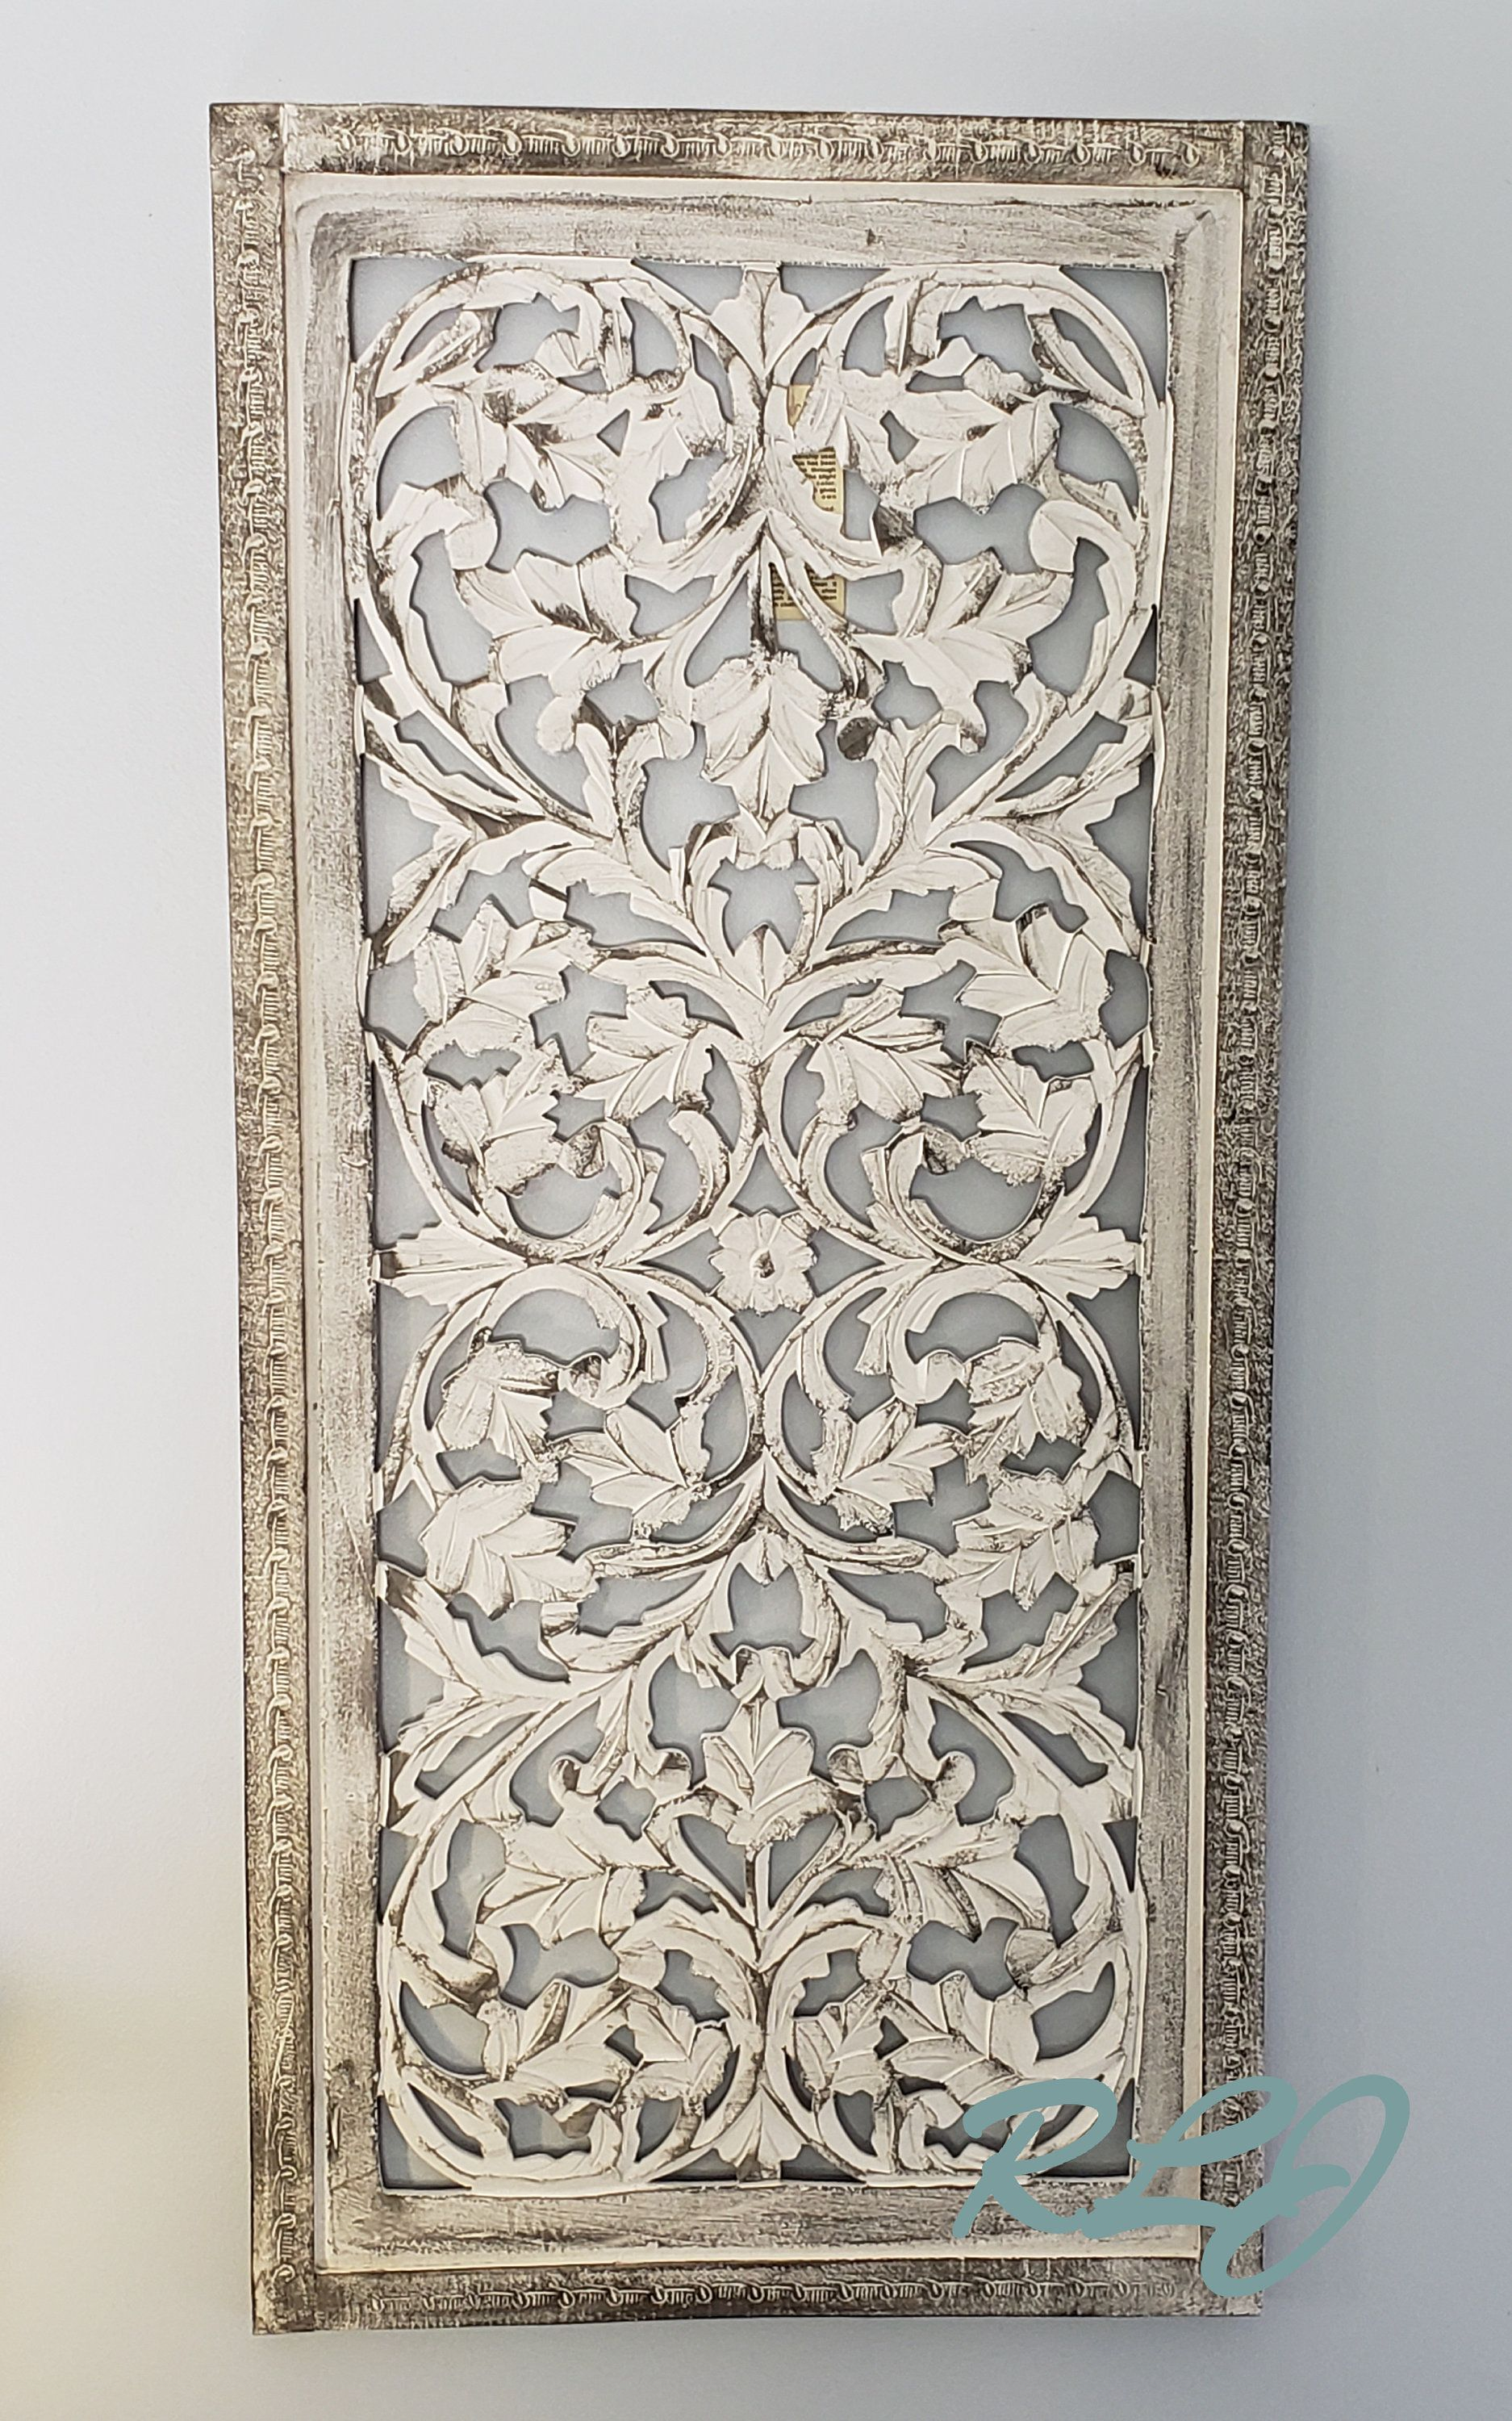 Rustic Tuscan Shabby Chic White Washed Carved Wood Wall Art Etsy Carved Wood Wall Art Wood Wall Art Etsy Wall Art